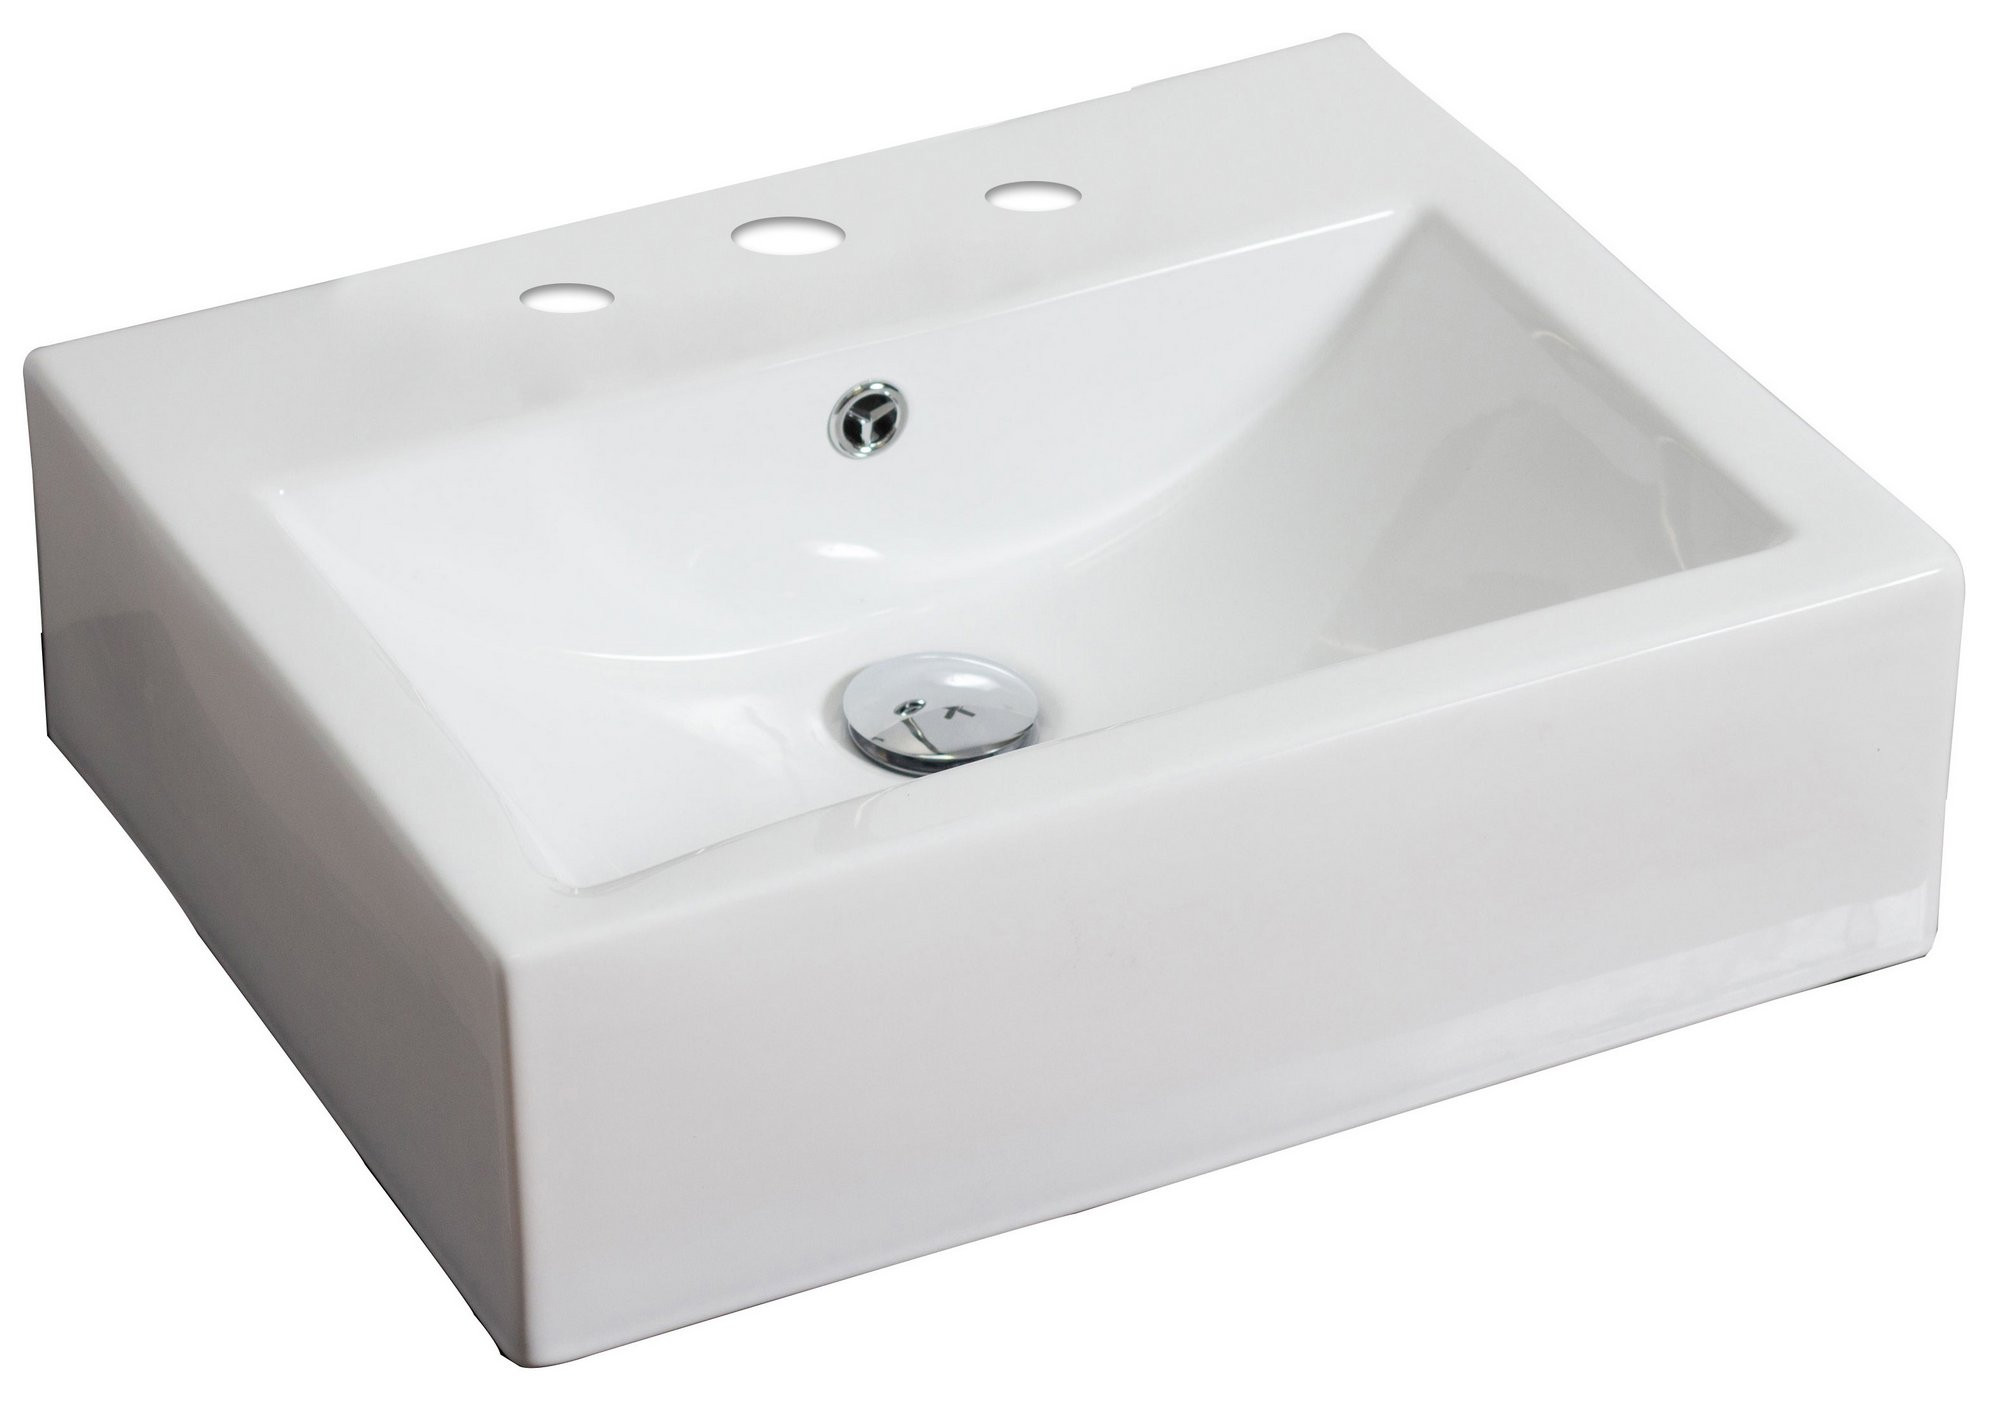 American Imagination AI-692 Wall Mount Rectangle Vessel In White Color For 8-in. o.c. Faucet